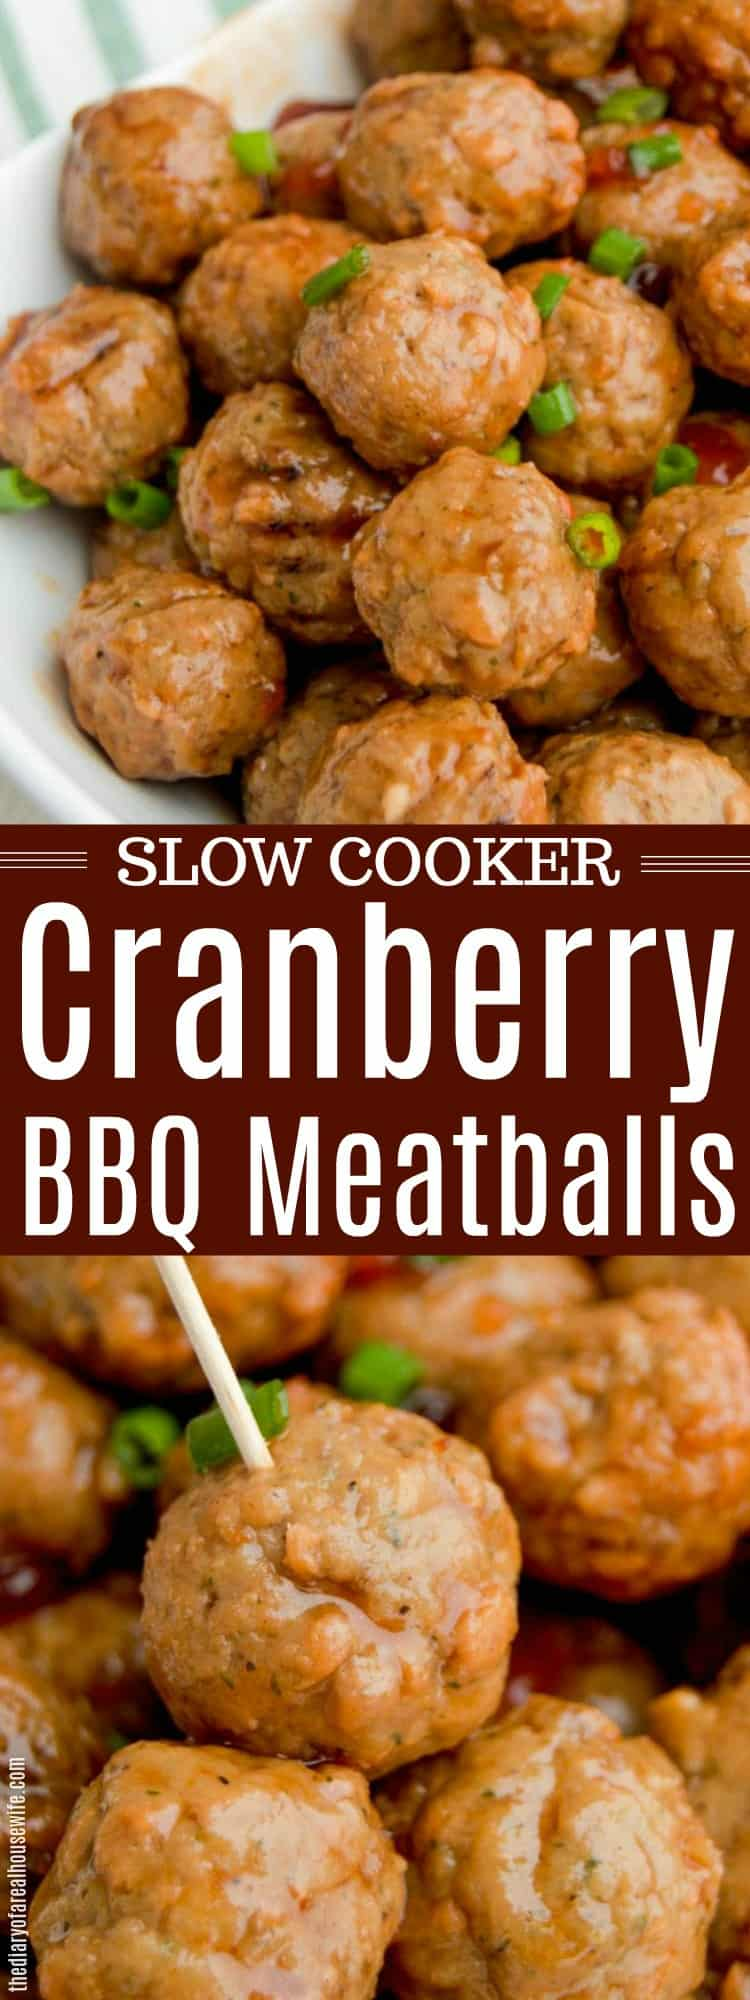 Slow Cooker Cranberry BBQ